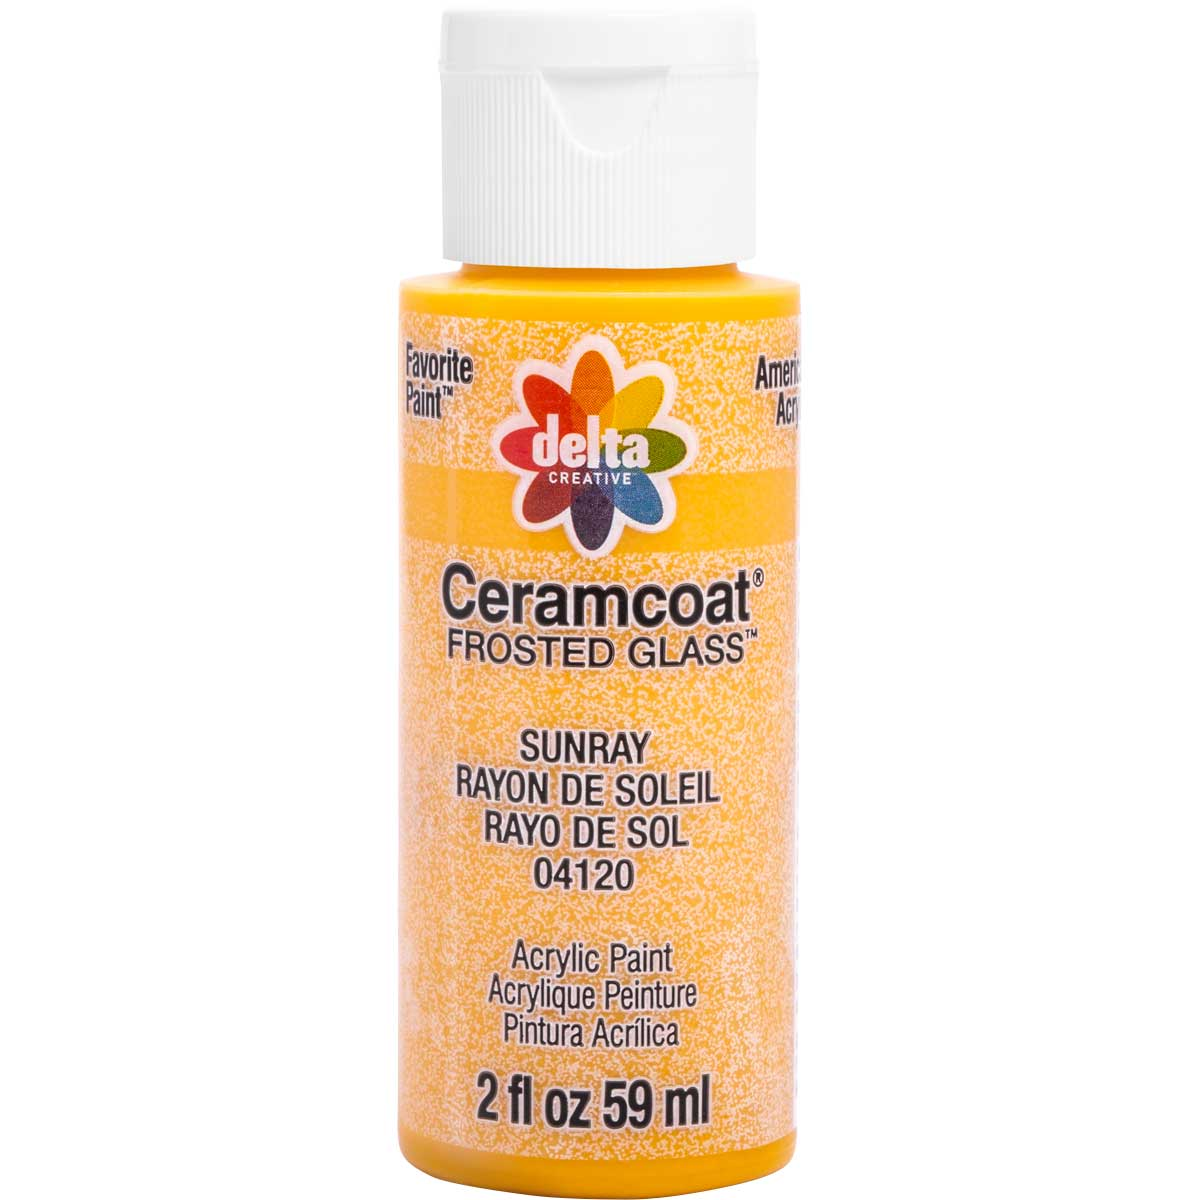 Delta Ceramcoat ® Frosted Glass Paint - Sunray, 2 oz. - 04120